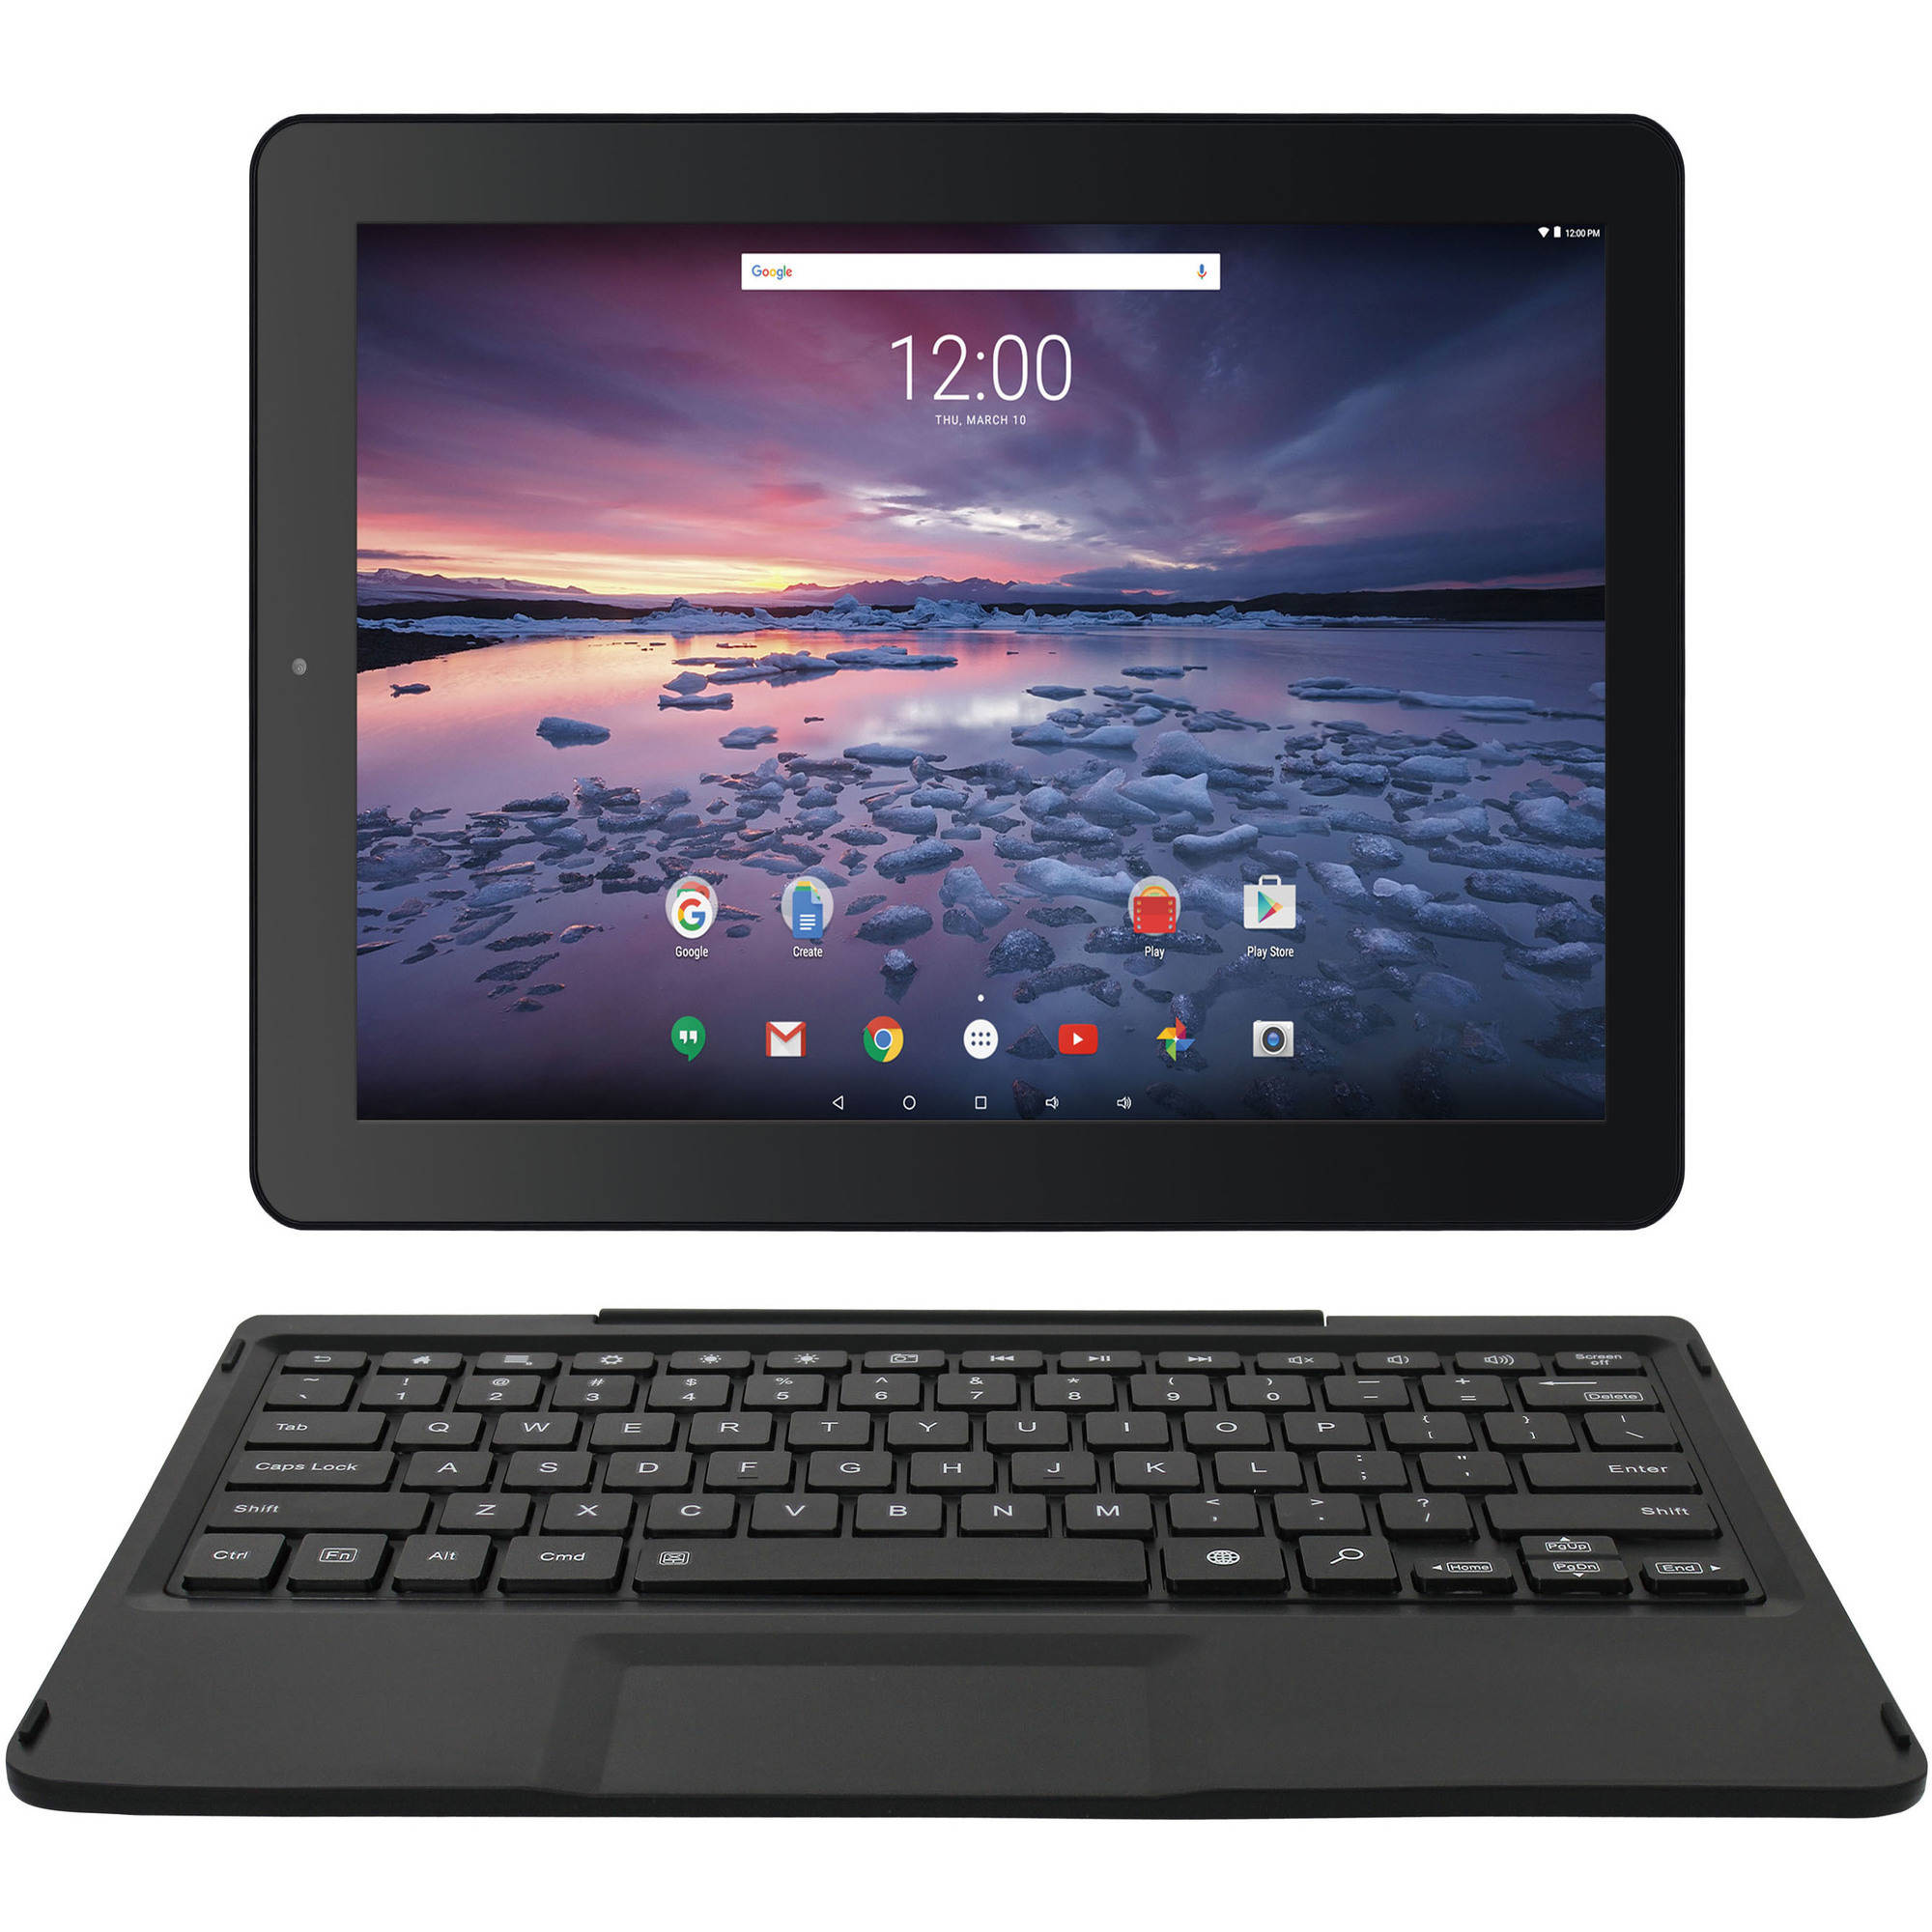 "Pro12 with WiFi 12.2"" Touchscreen Tablet PC Featuring Android 6.0 (Marshmallow) Operating System, Black"